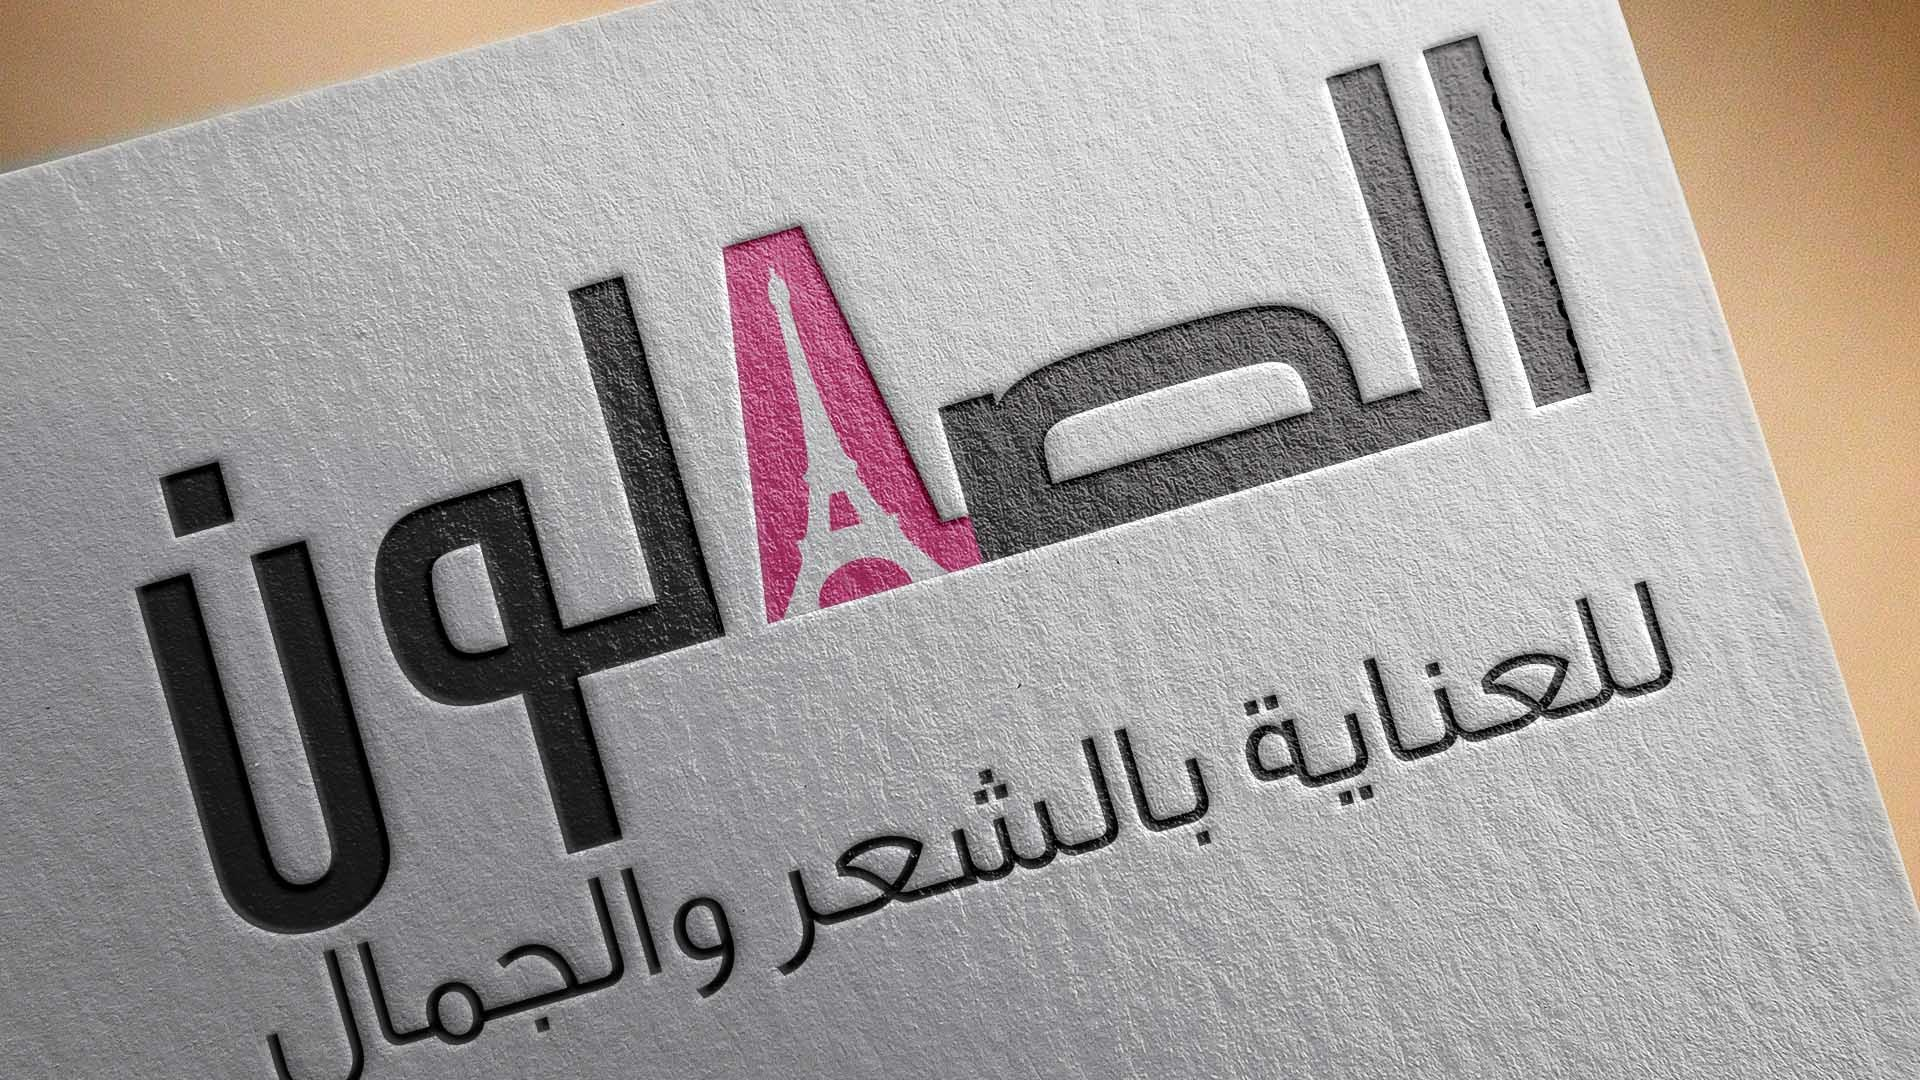 le-salon-logo-design-Arabic-1